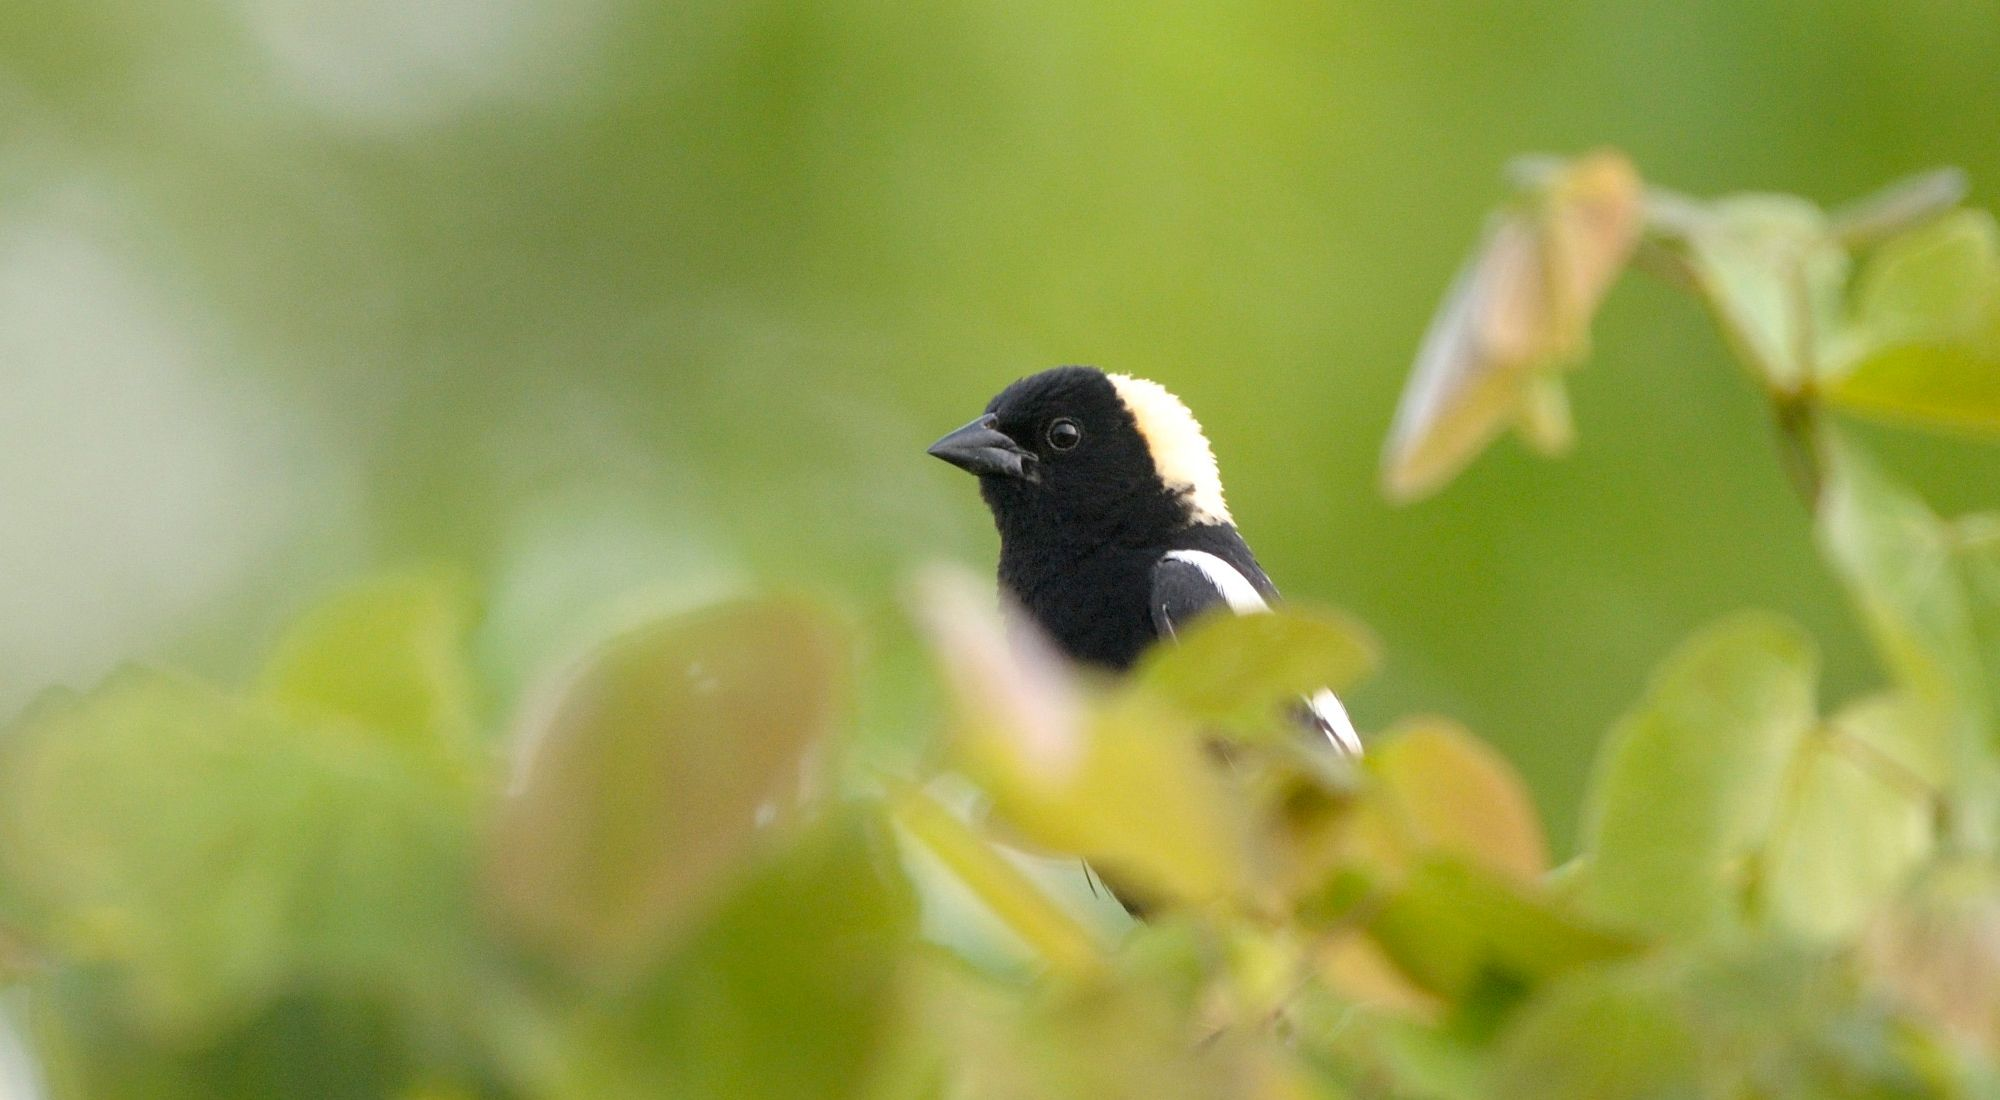 Close-up of a small bird with a black head and beak and a straw-colored patch on back of head that is mostly concealed by vegetation in the foreground.